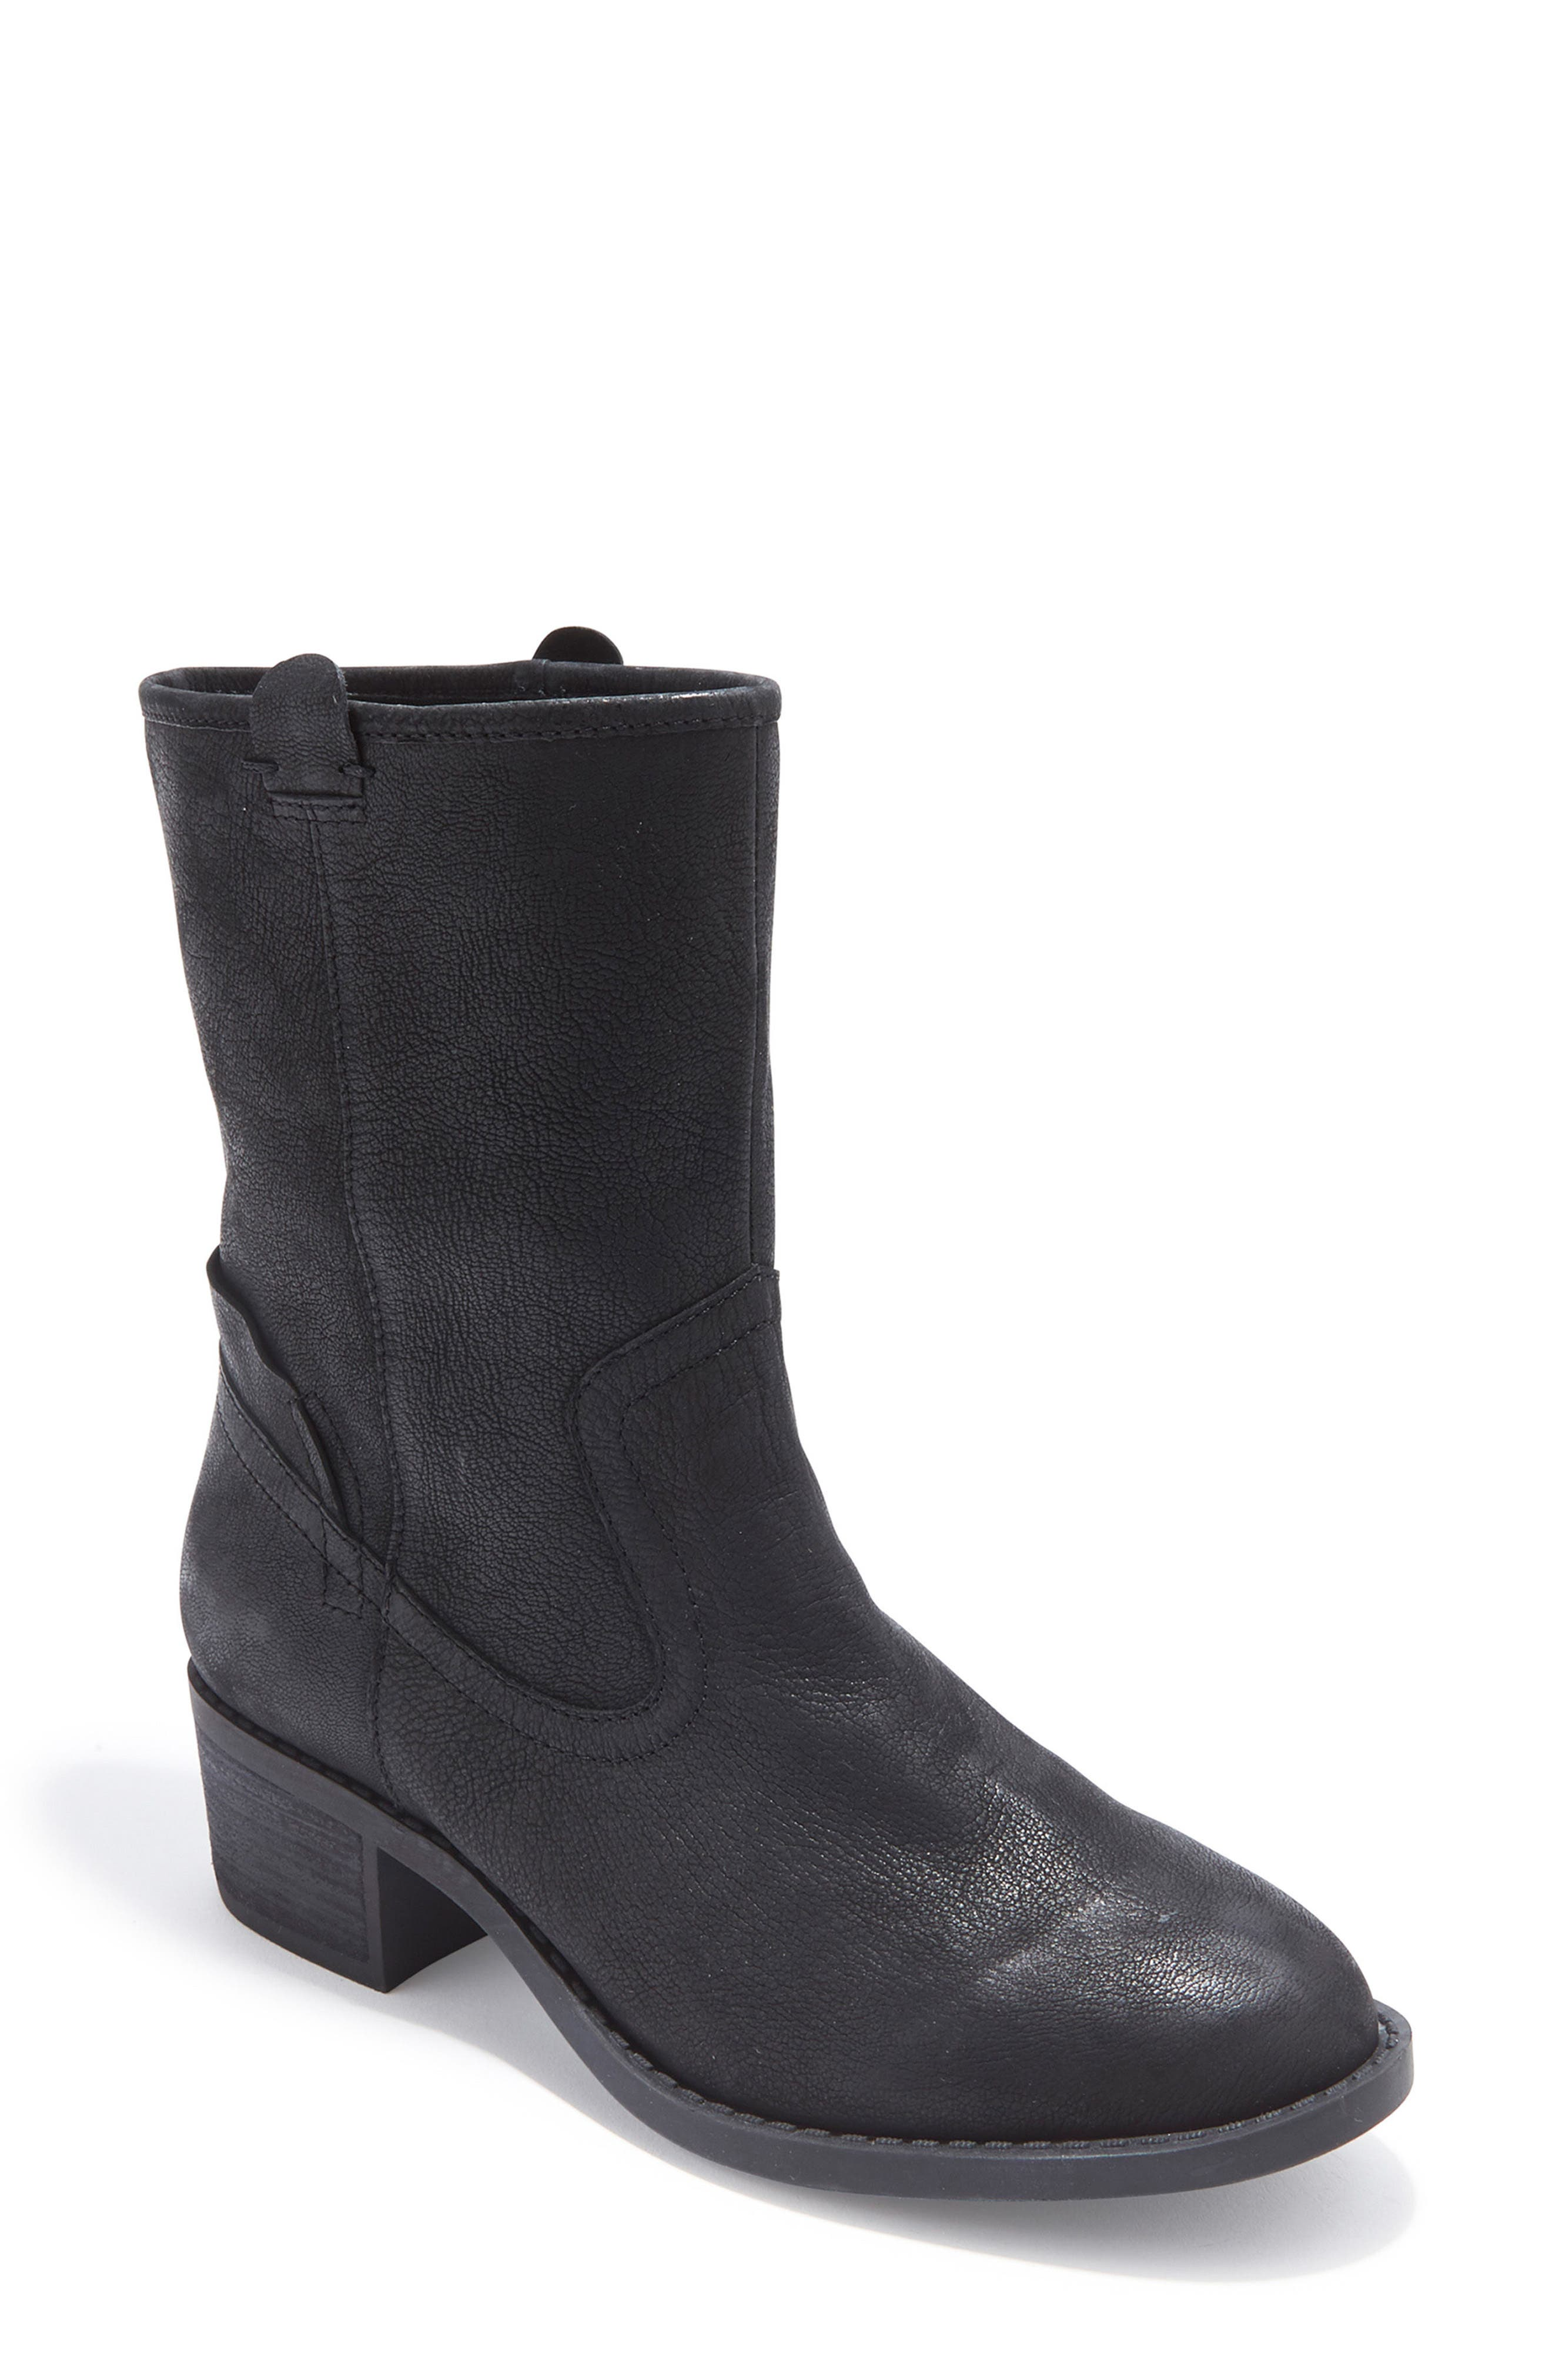 Tanger Boot,                         Main,                         color, 011